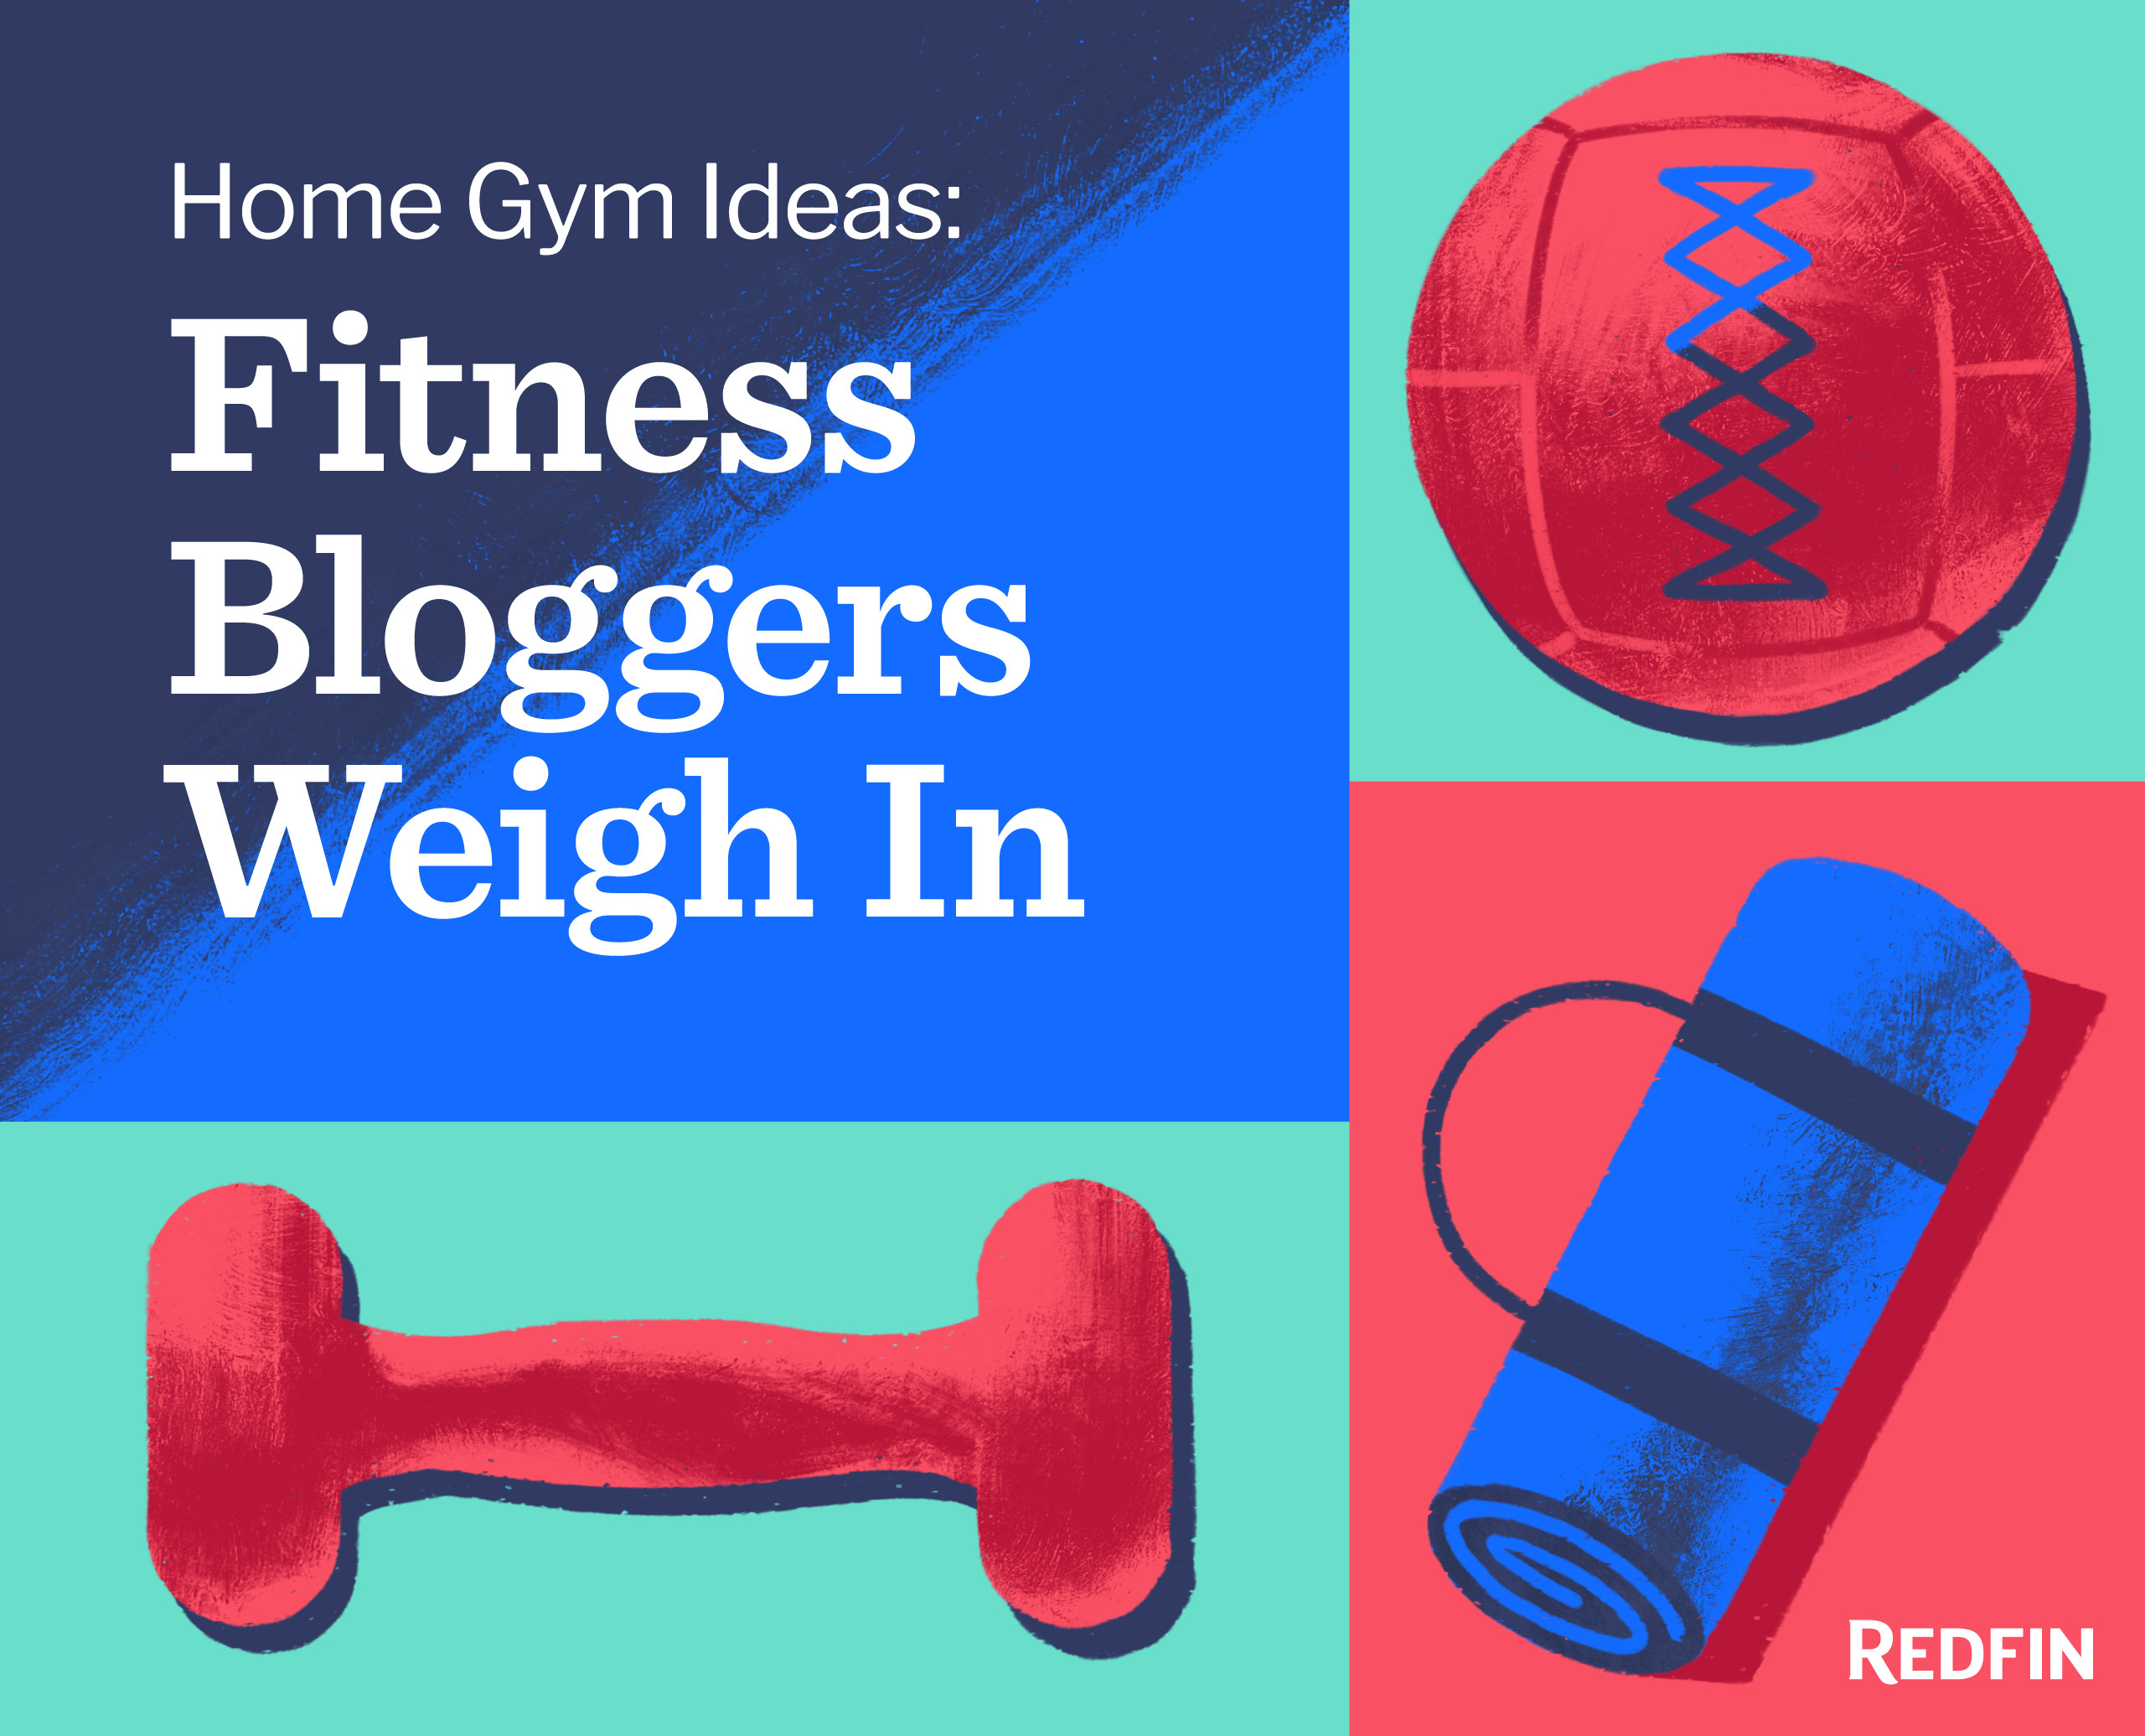 Home Gym Ideas for Exercise